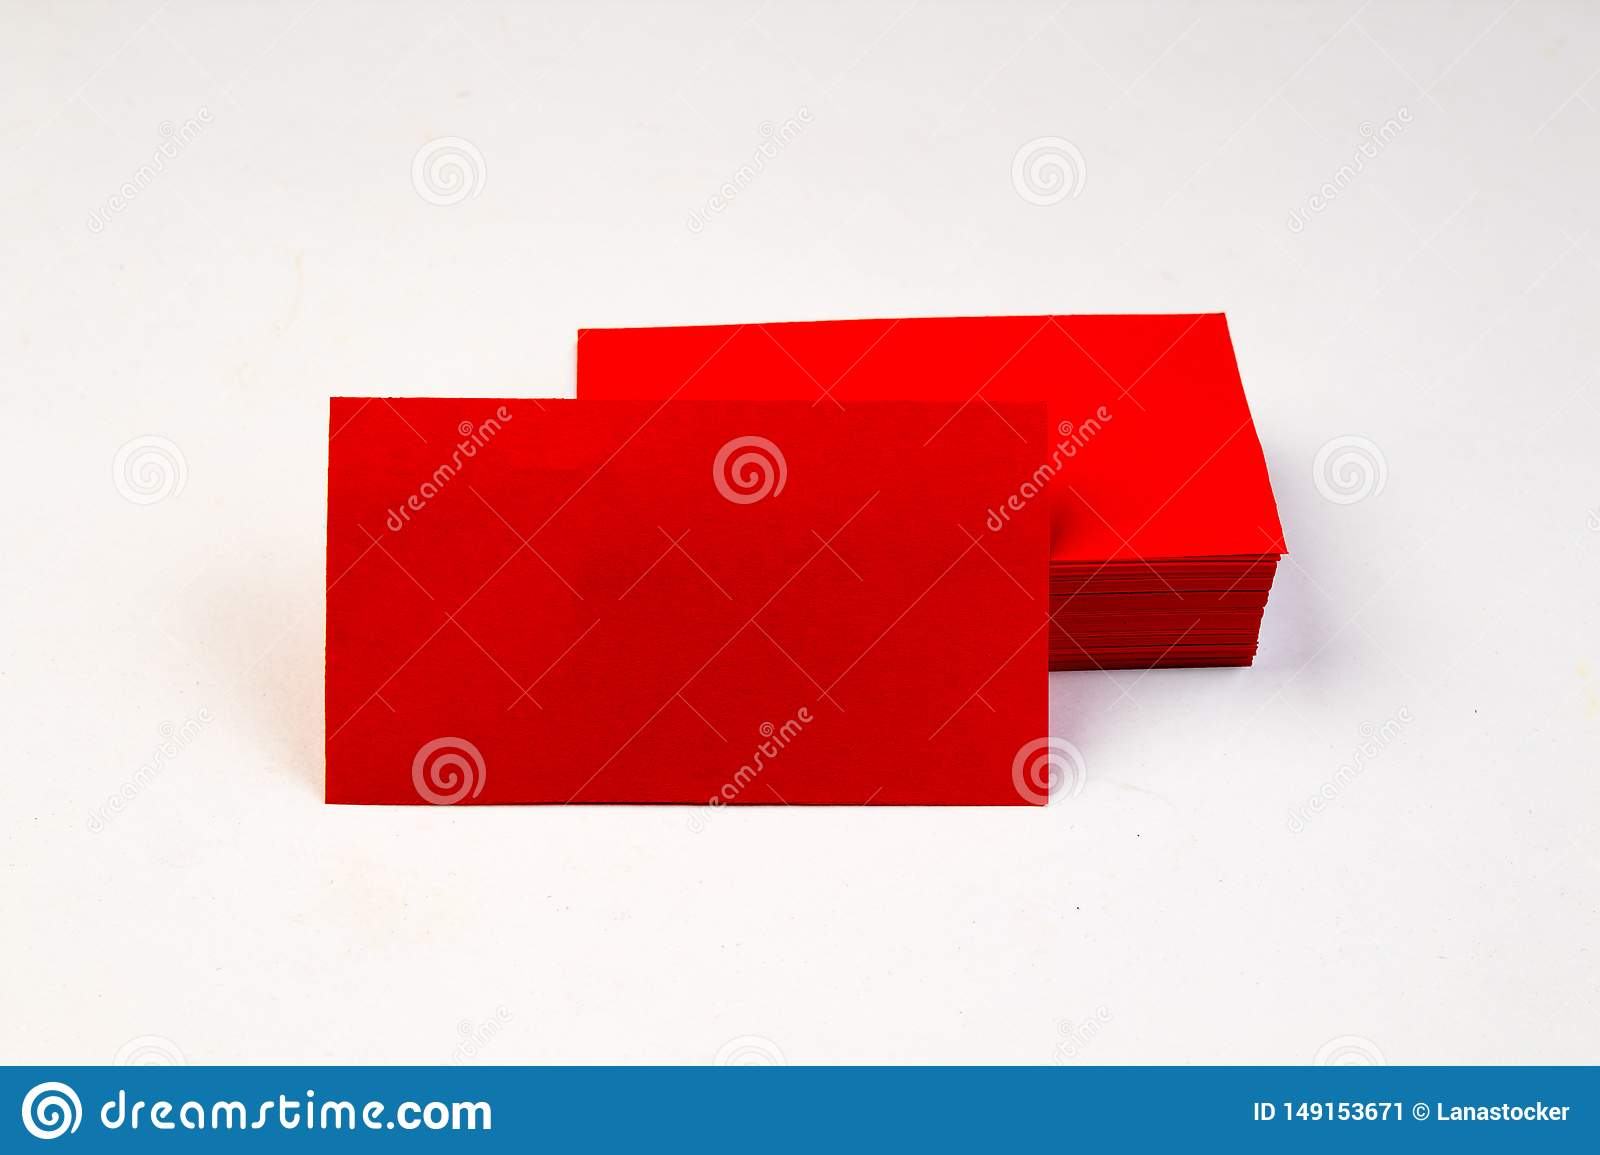 Stack of red blank business cards on white background.